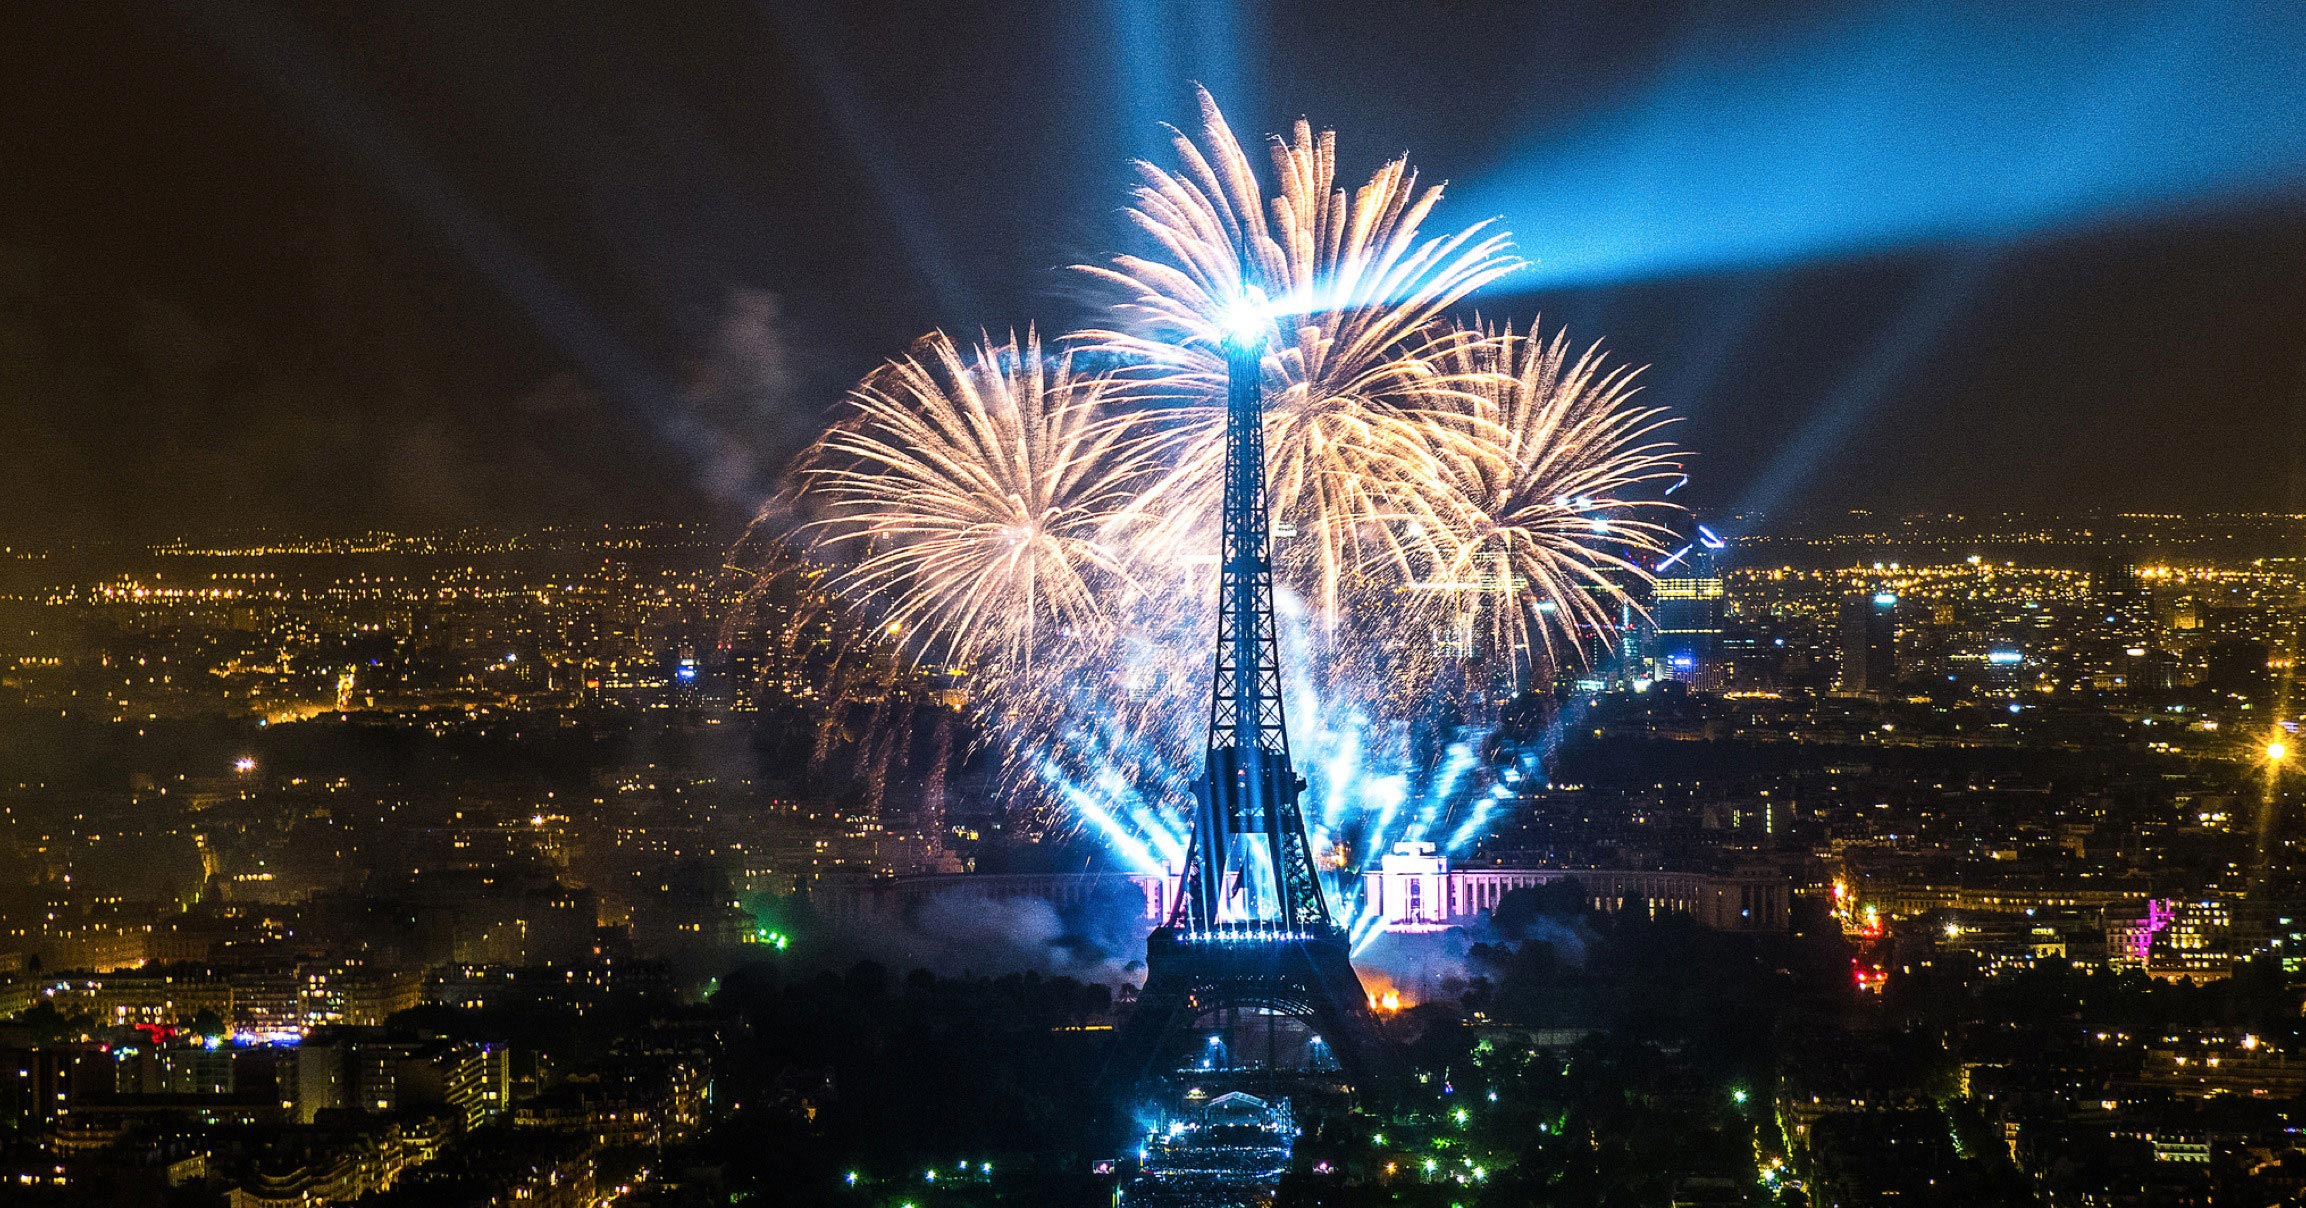 Photo du feu d'artifice sur la tour Eiffel à Paris